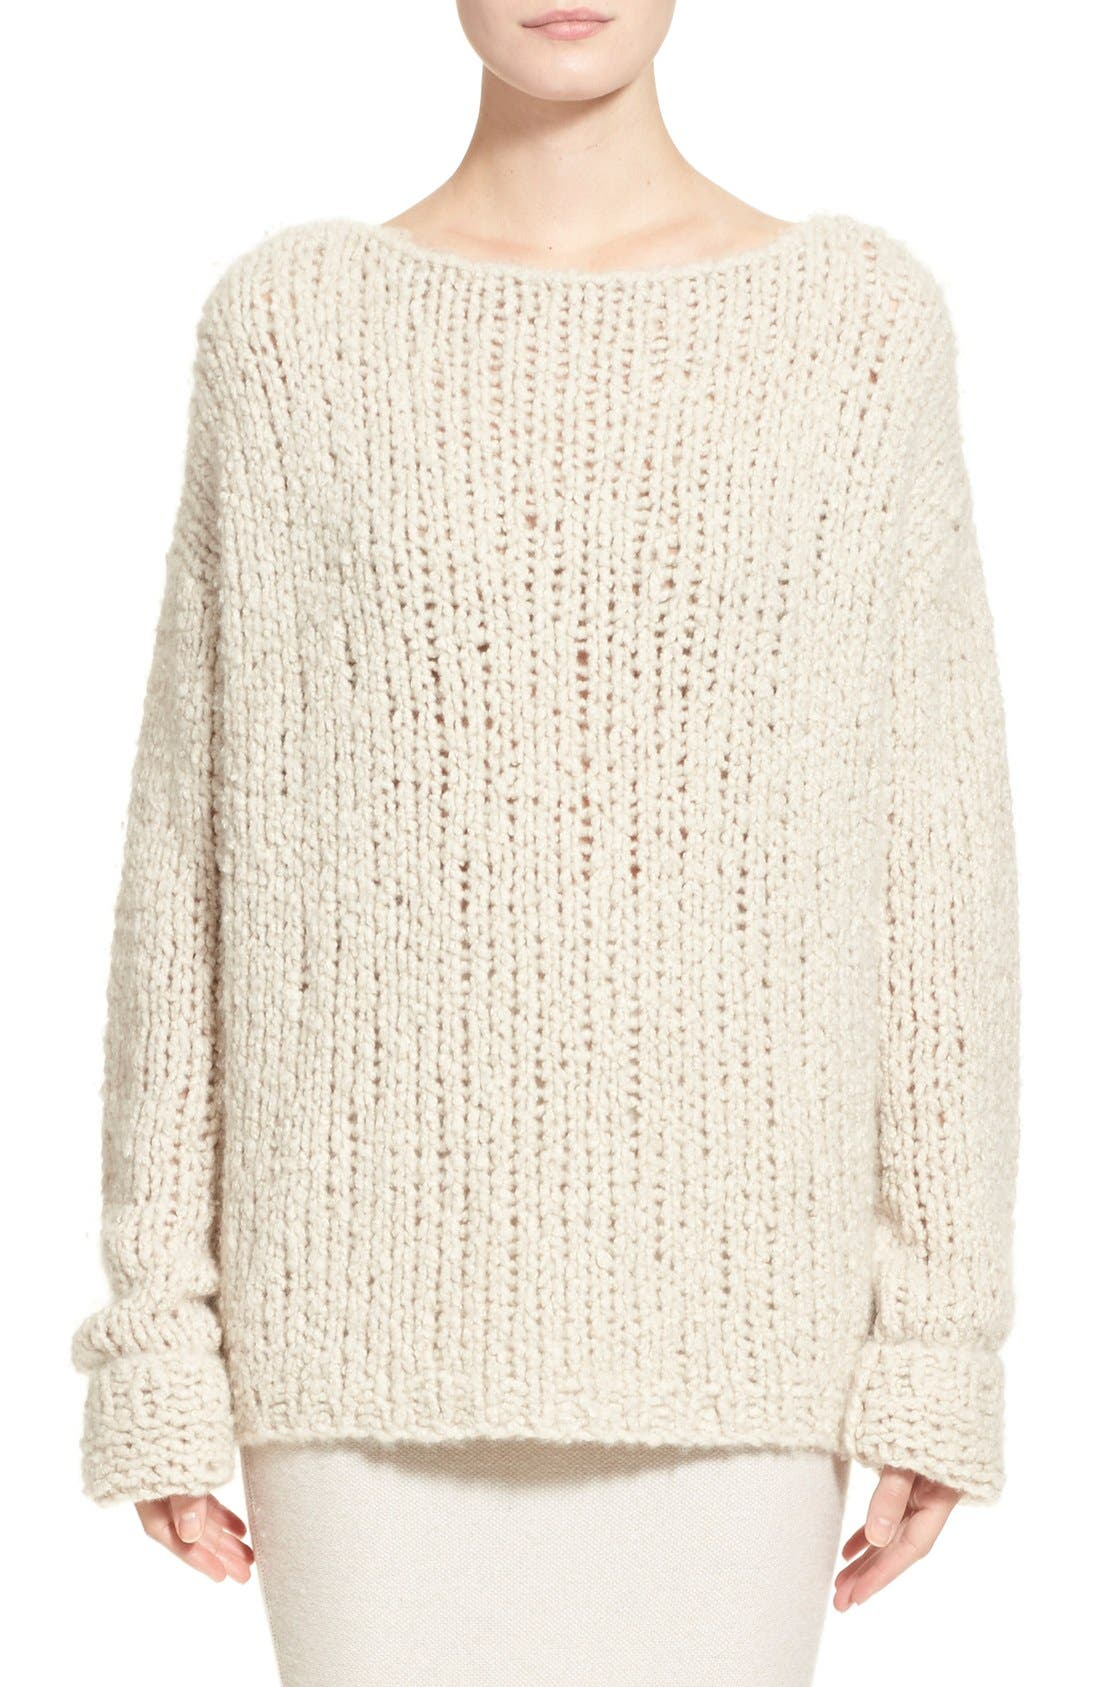 Donna KaranCollection Hand Knit Cashmere Sweater, Main, color, 282